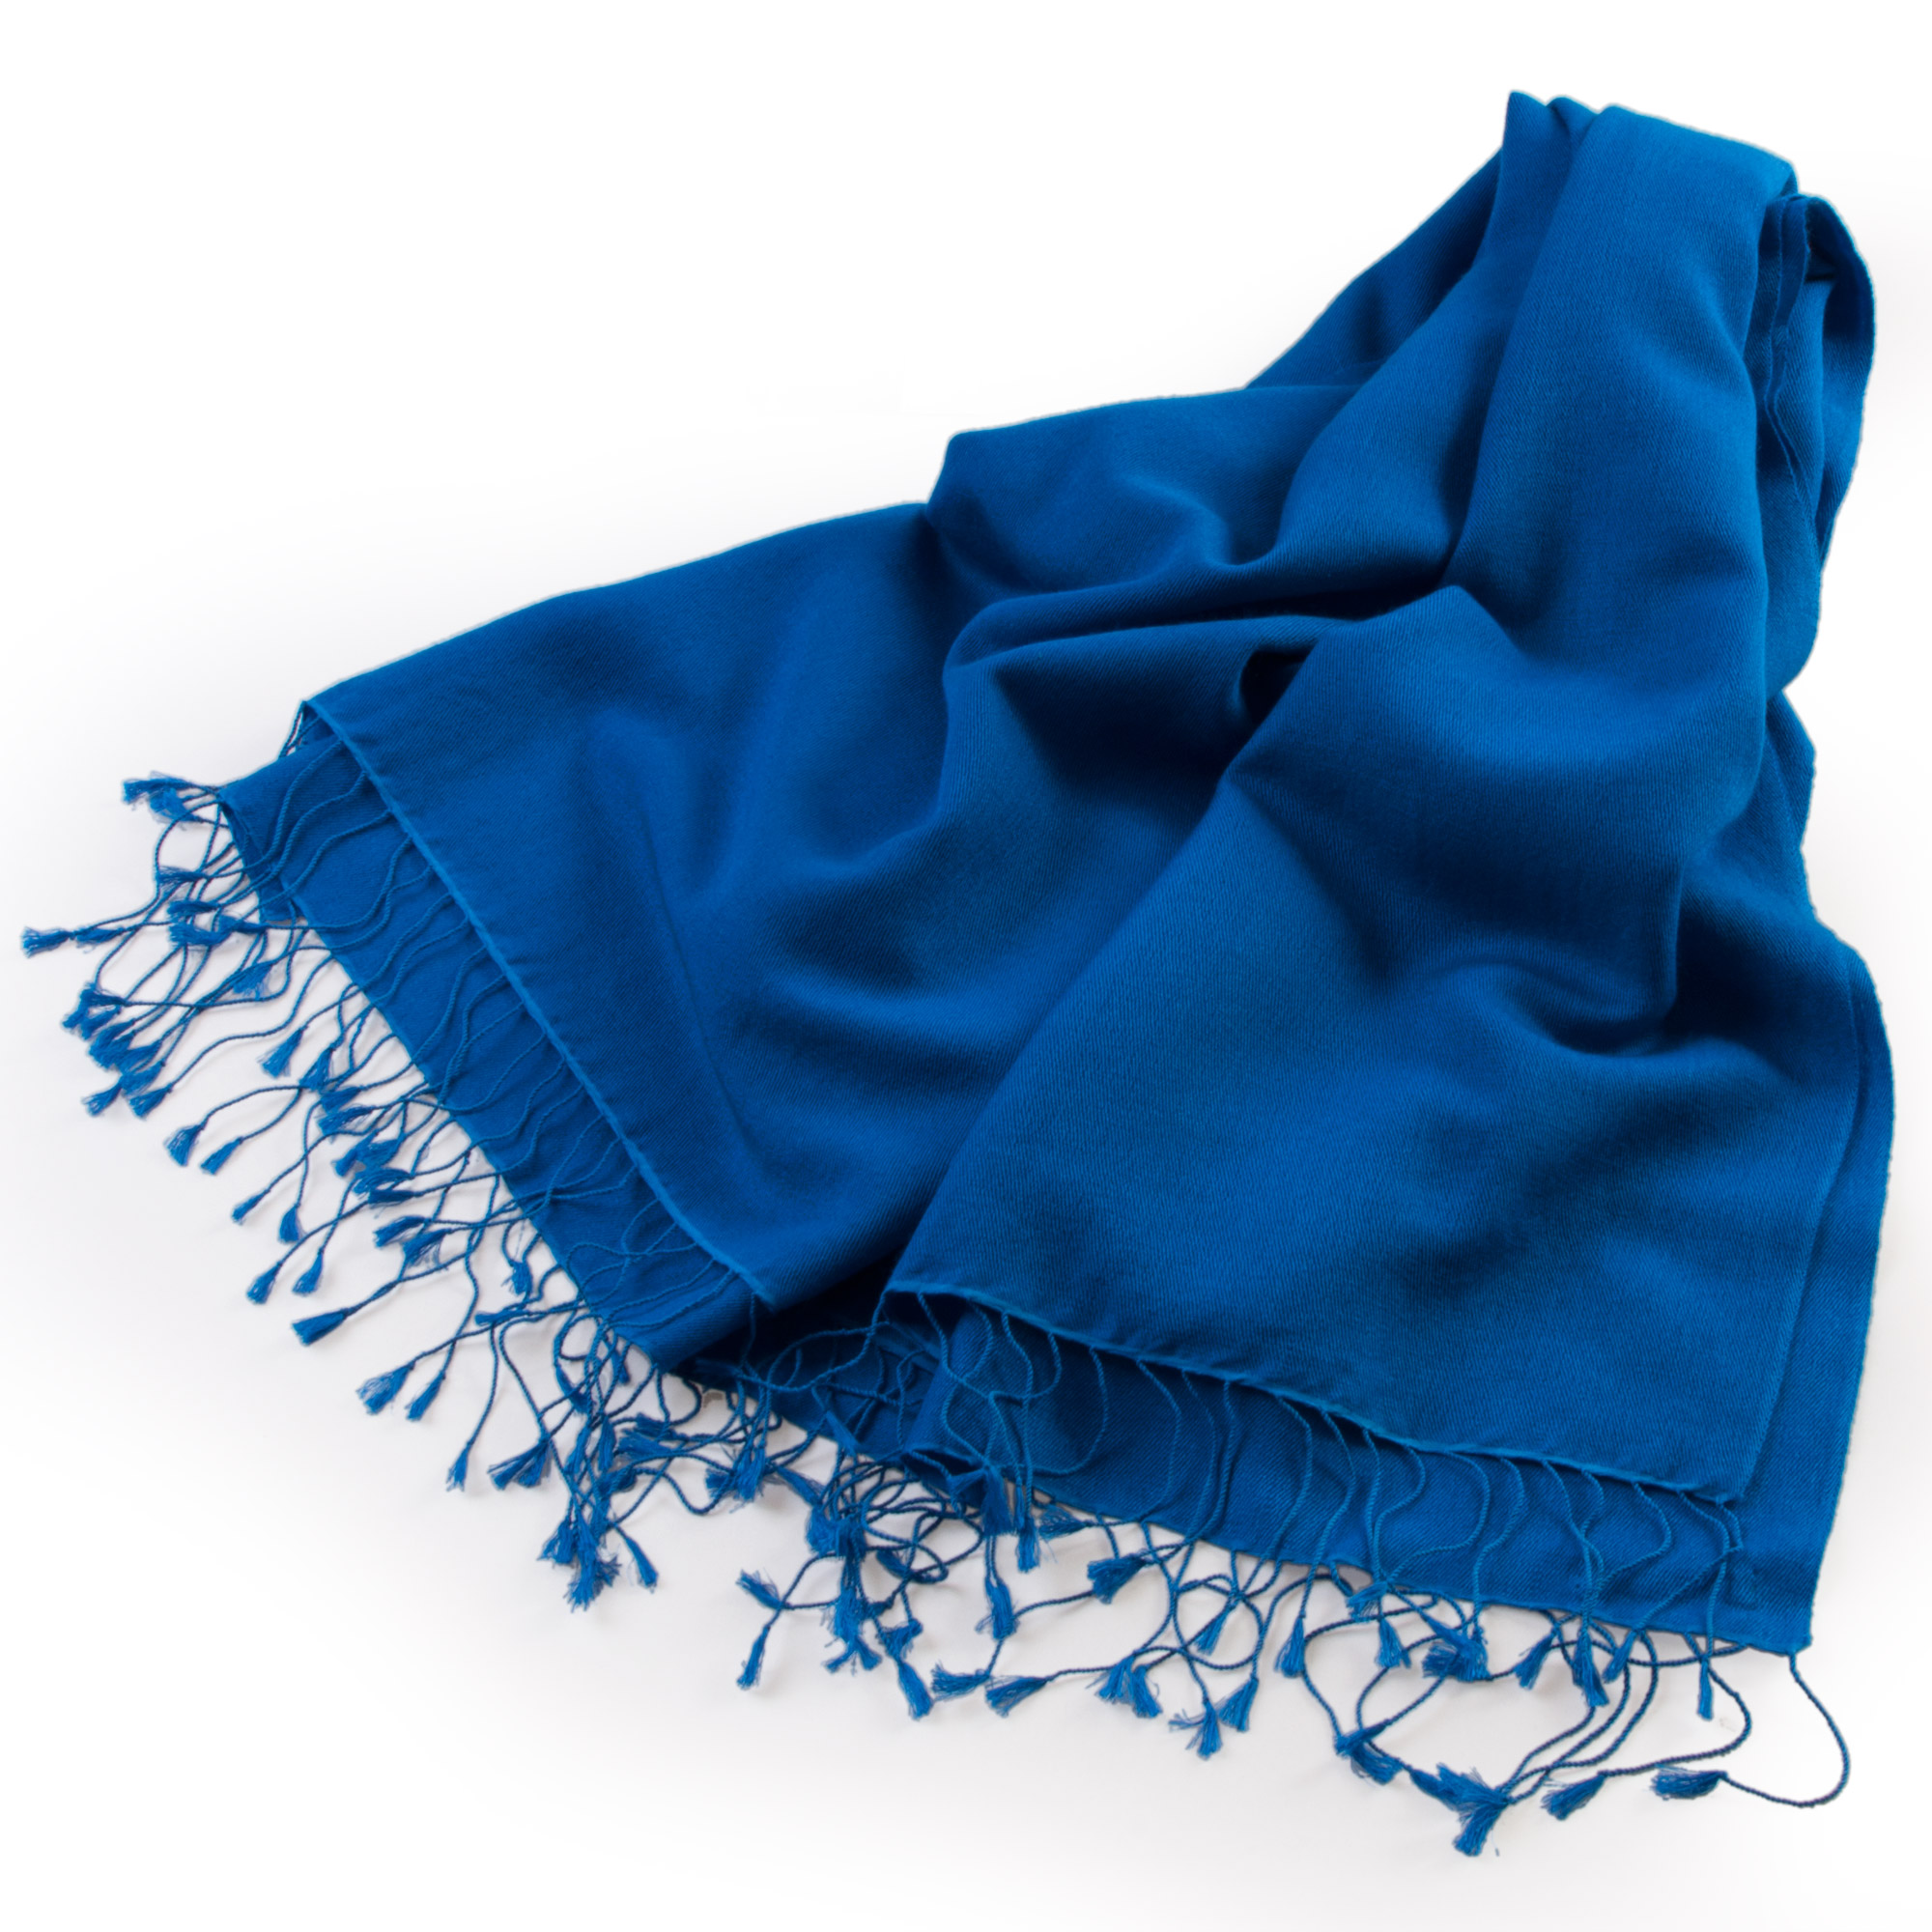 Pashmina Medium Stole - 55x200cm - 70% Cashmere/30% Silk - Brilliant Blue